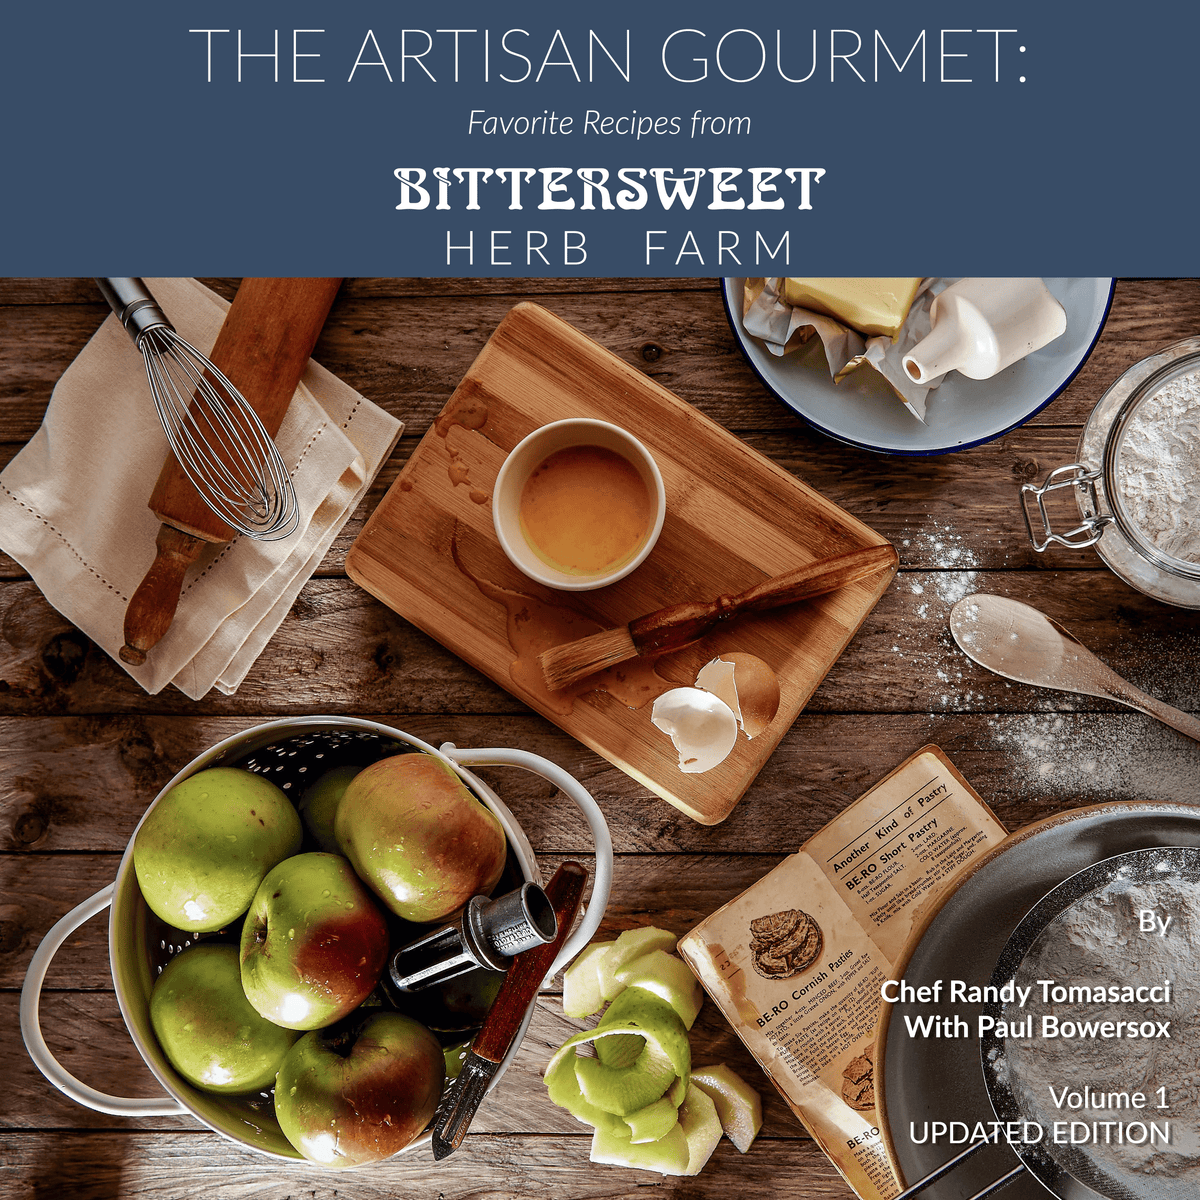 The Artisan Gourmet: Favorite Recipes from Bittersweet Herb Farm Digital Download Cookbook